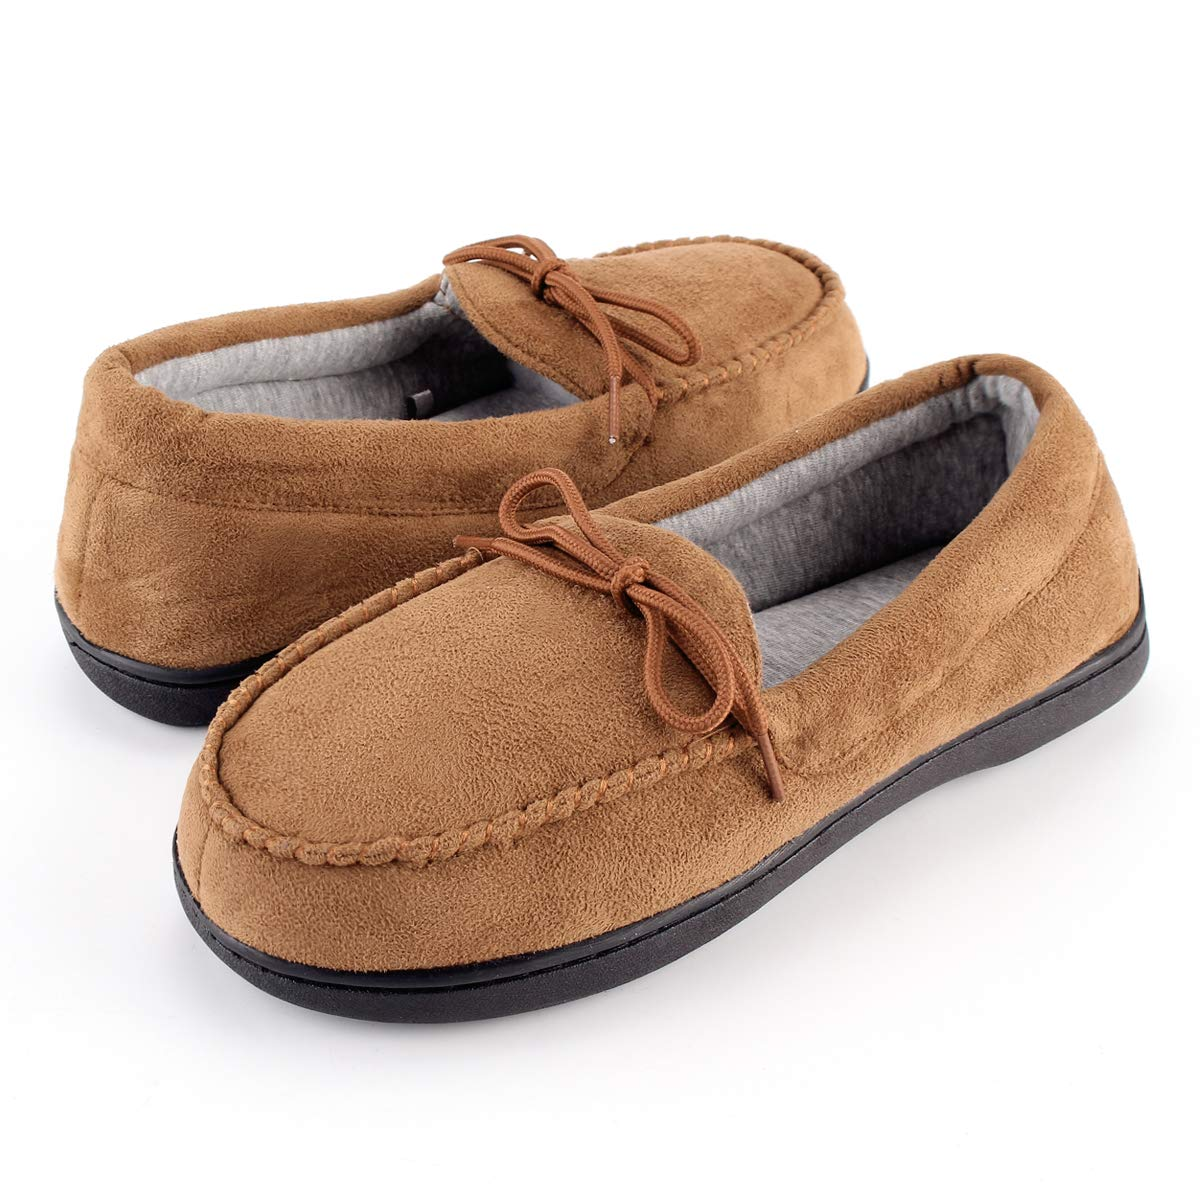 KomForme Men' s Memory Foam Slipper, Suede Moccasin Slip On Slipper for Indoor and Outdoor House Shoes